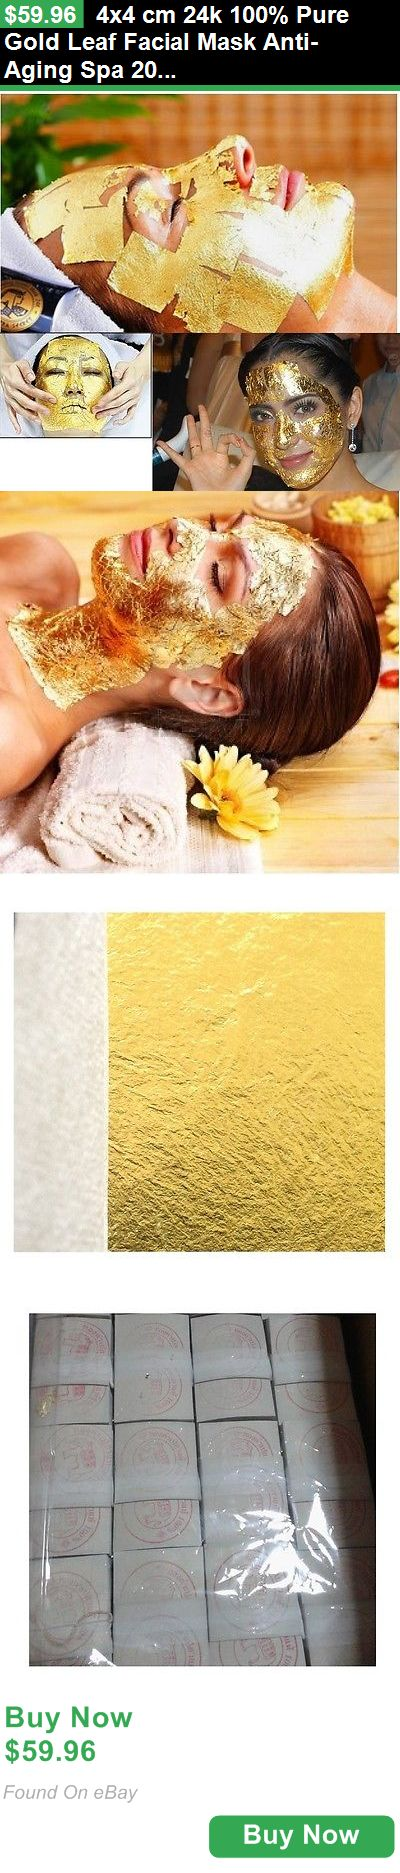 Skin Care 78123: 4X4 Cm 24K 100% Pure Gold Leaf Facial Mask Anti-Aging Spa 200 Sheets BUY IT NOW ONLY: $59.96